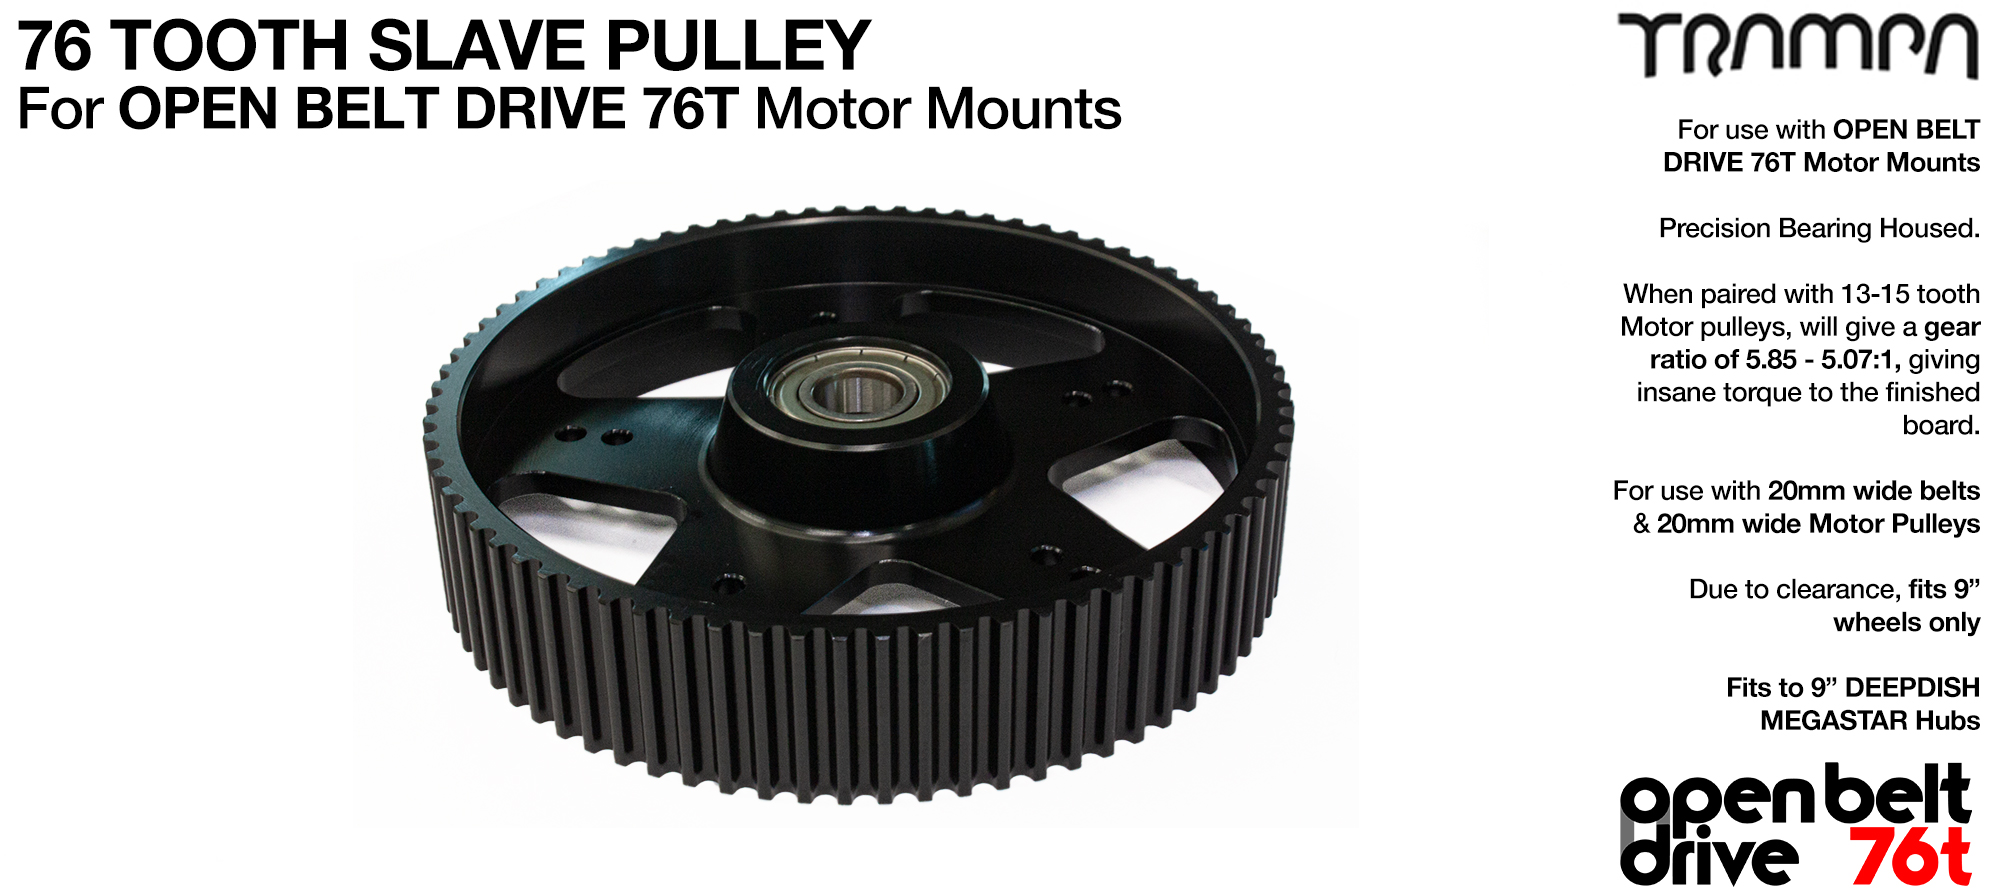 76 Tooth Slave Pulley with Pressed bearing - to fit 20mm Belts on OBD (OPEN BELT DRIVE) Motor Mounts